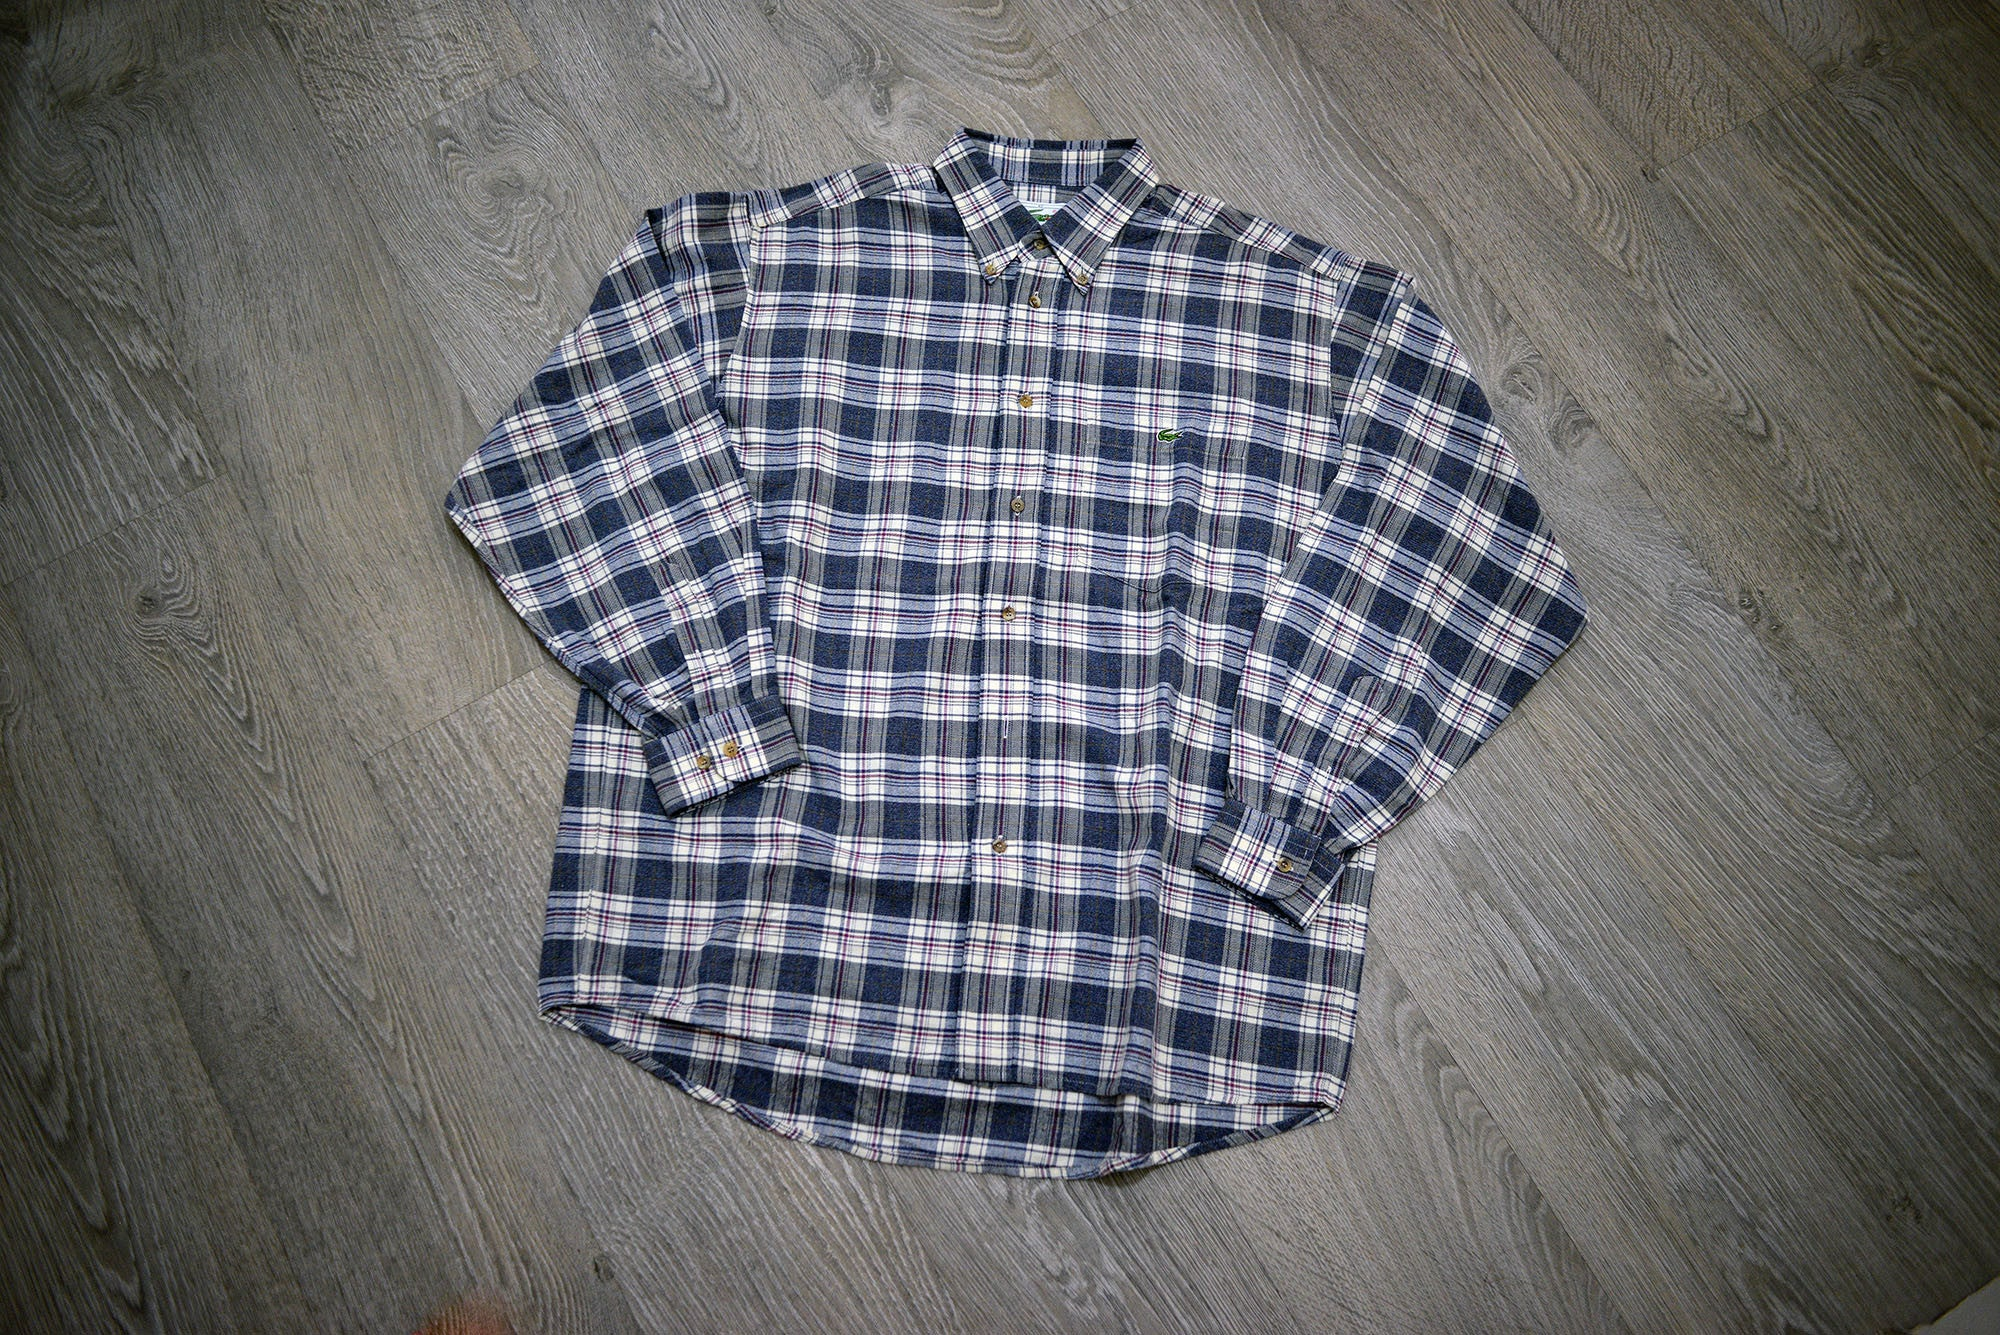 Vintage Lacoste Checked Blue Plaid Patterned Long Sleeve Shirt